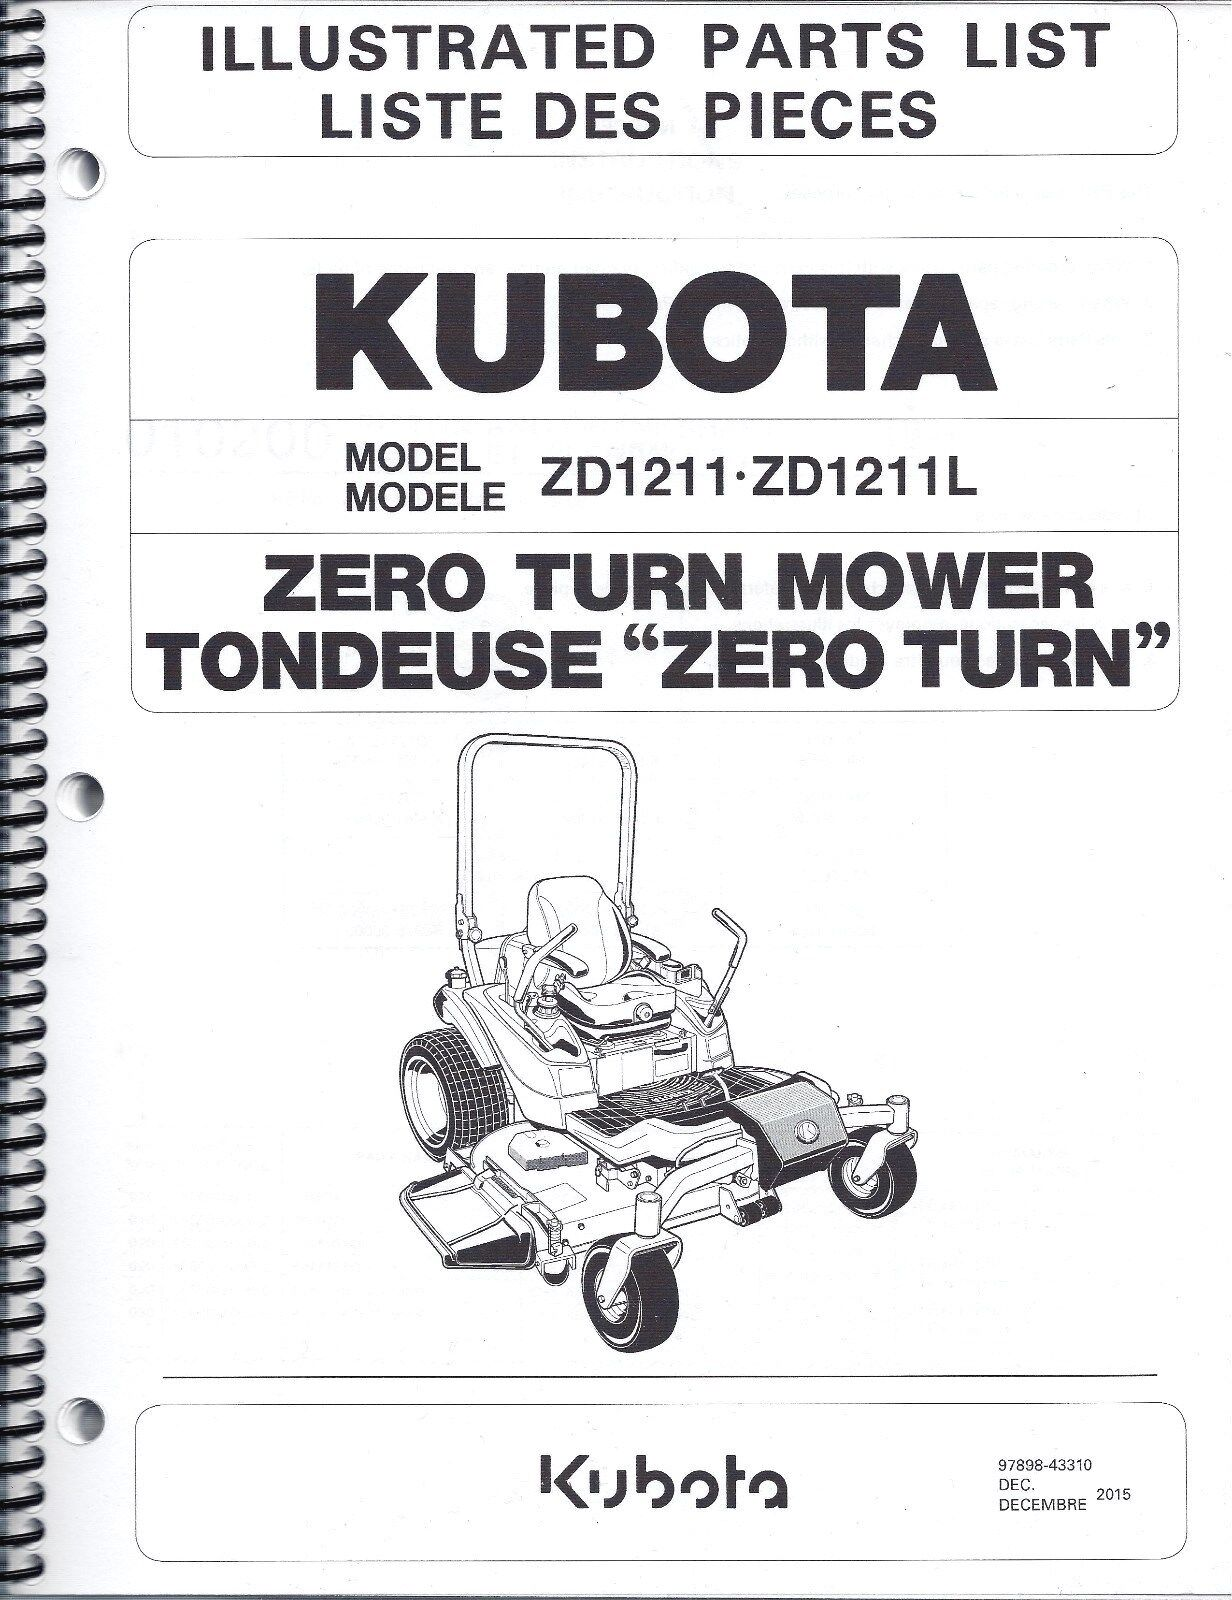 Kubota zd1211 zd1211l zero turn mower illustrated parts manual ebay resntentobalflowflowcomponenttechnicalissues publicscrutiny Image collections